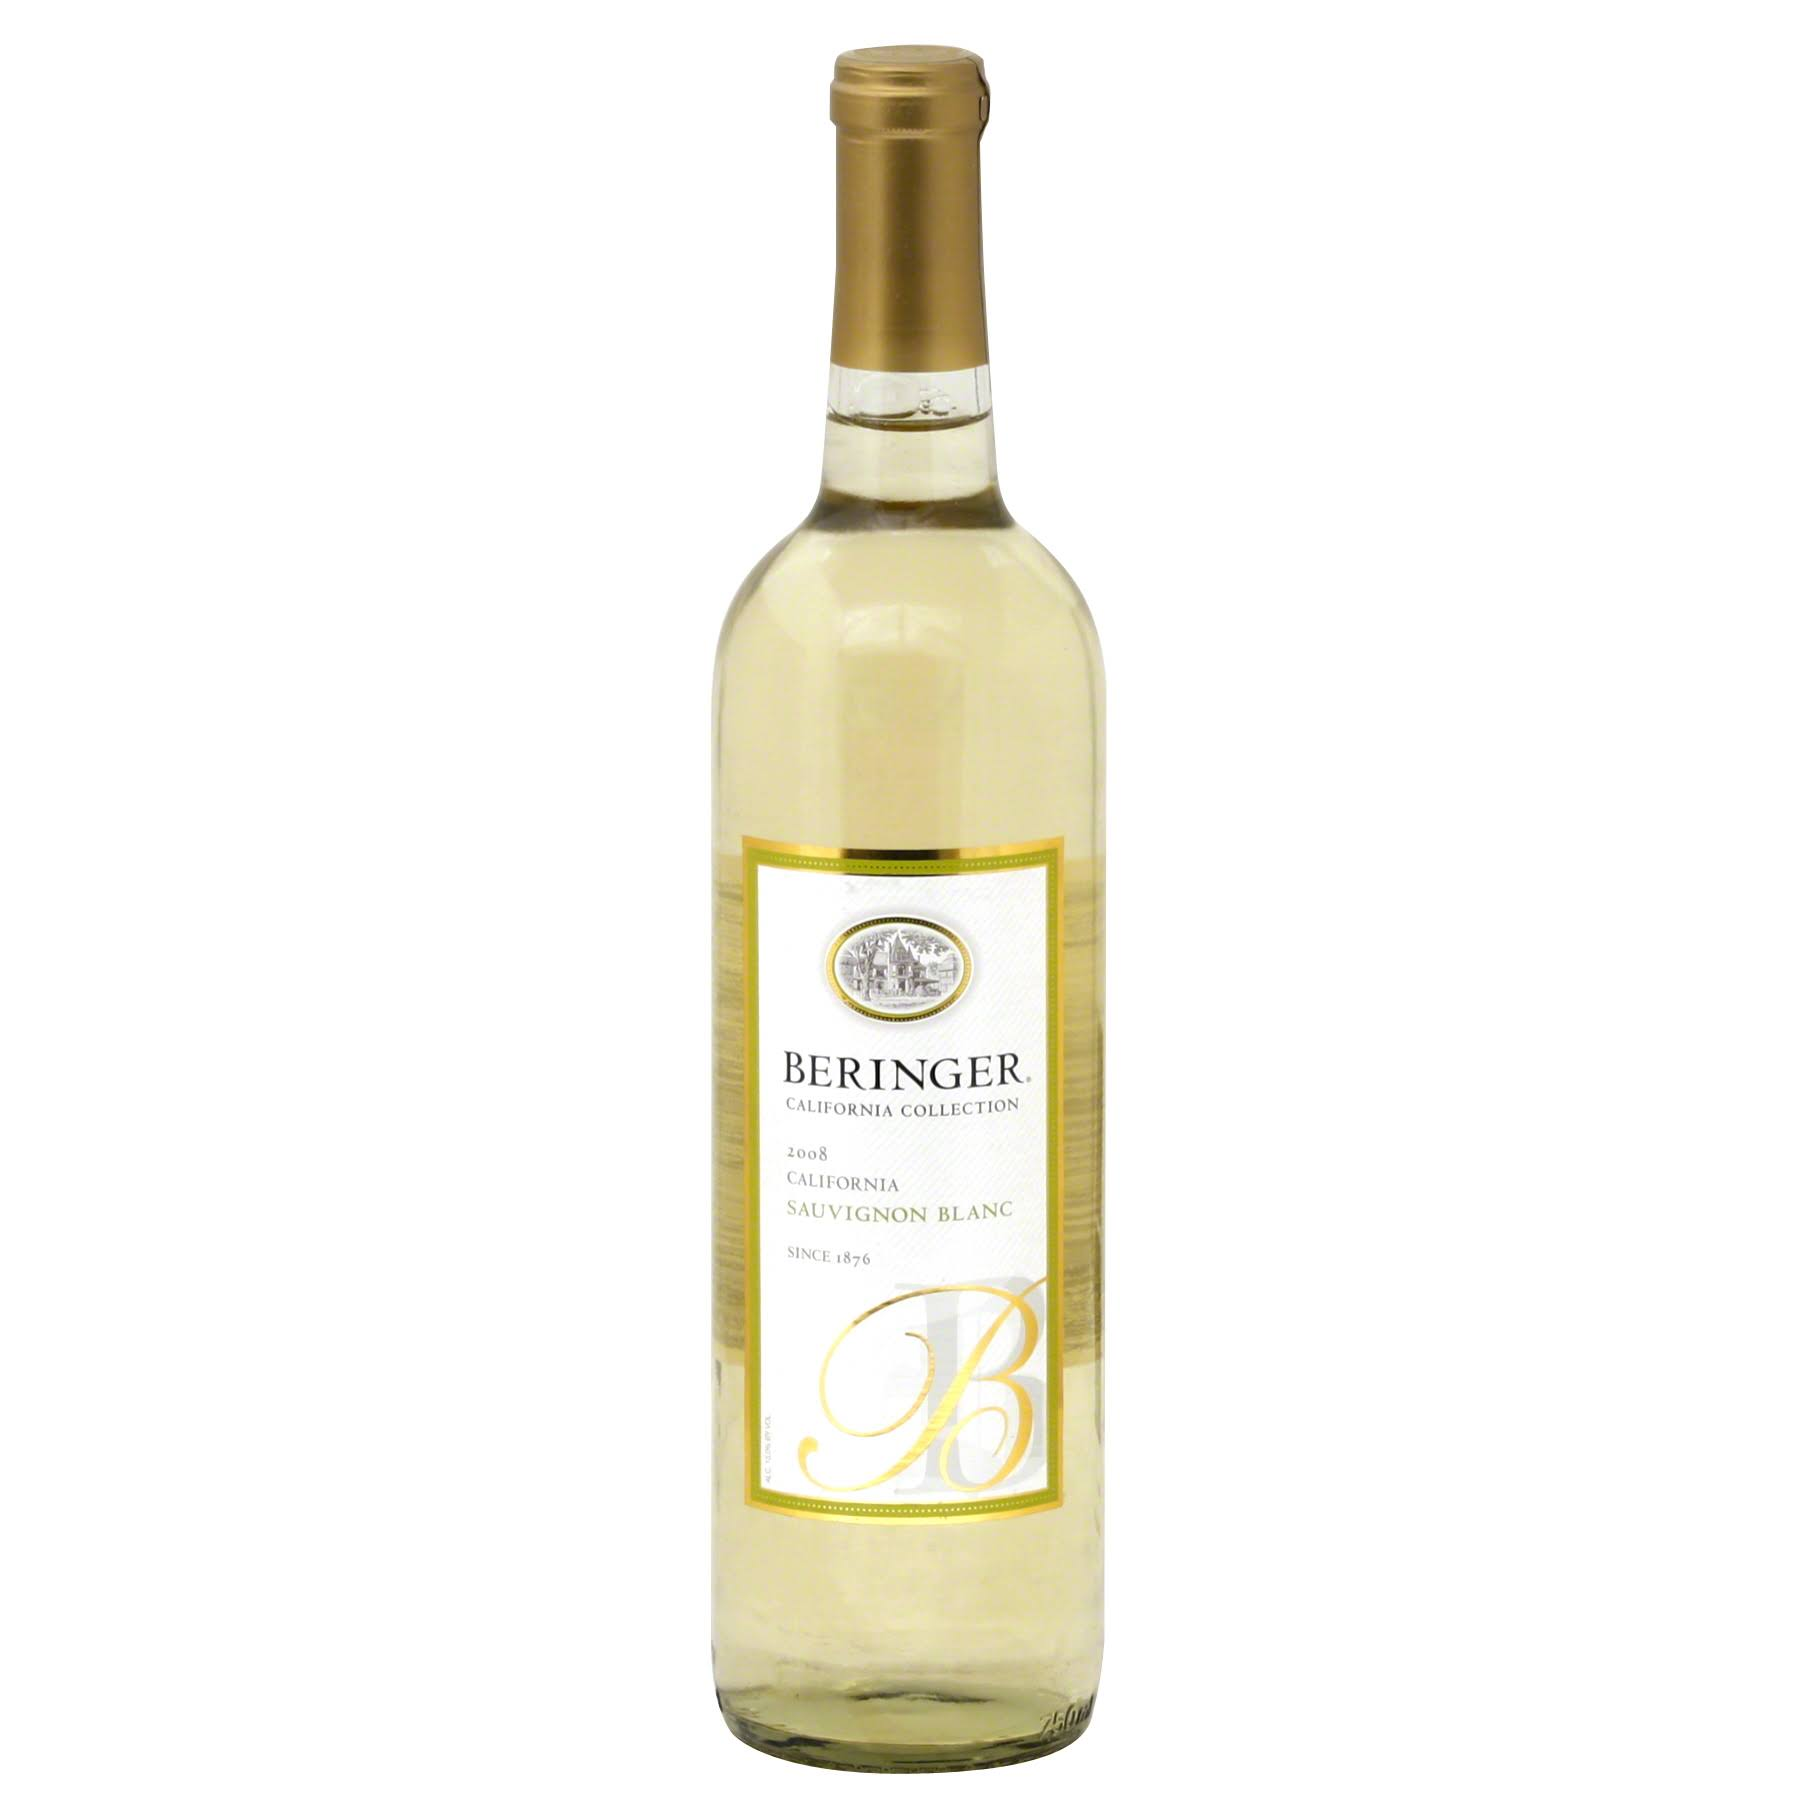 Beringer California Collection Sauvignon Blanc